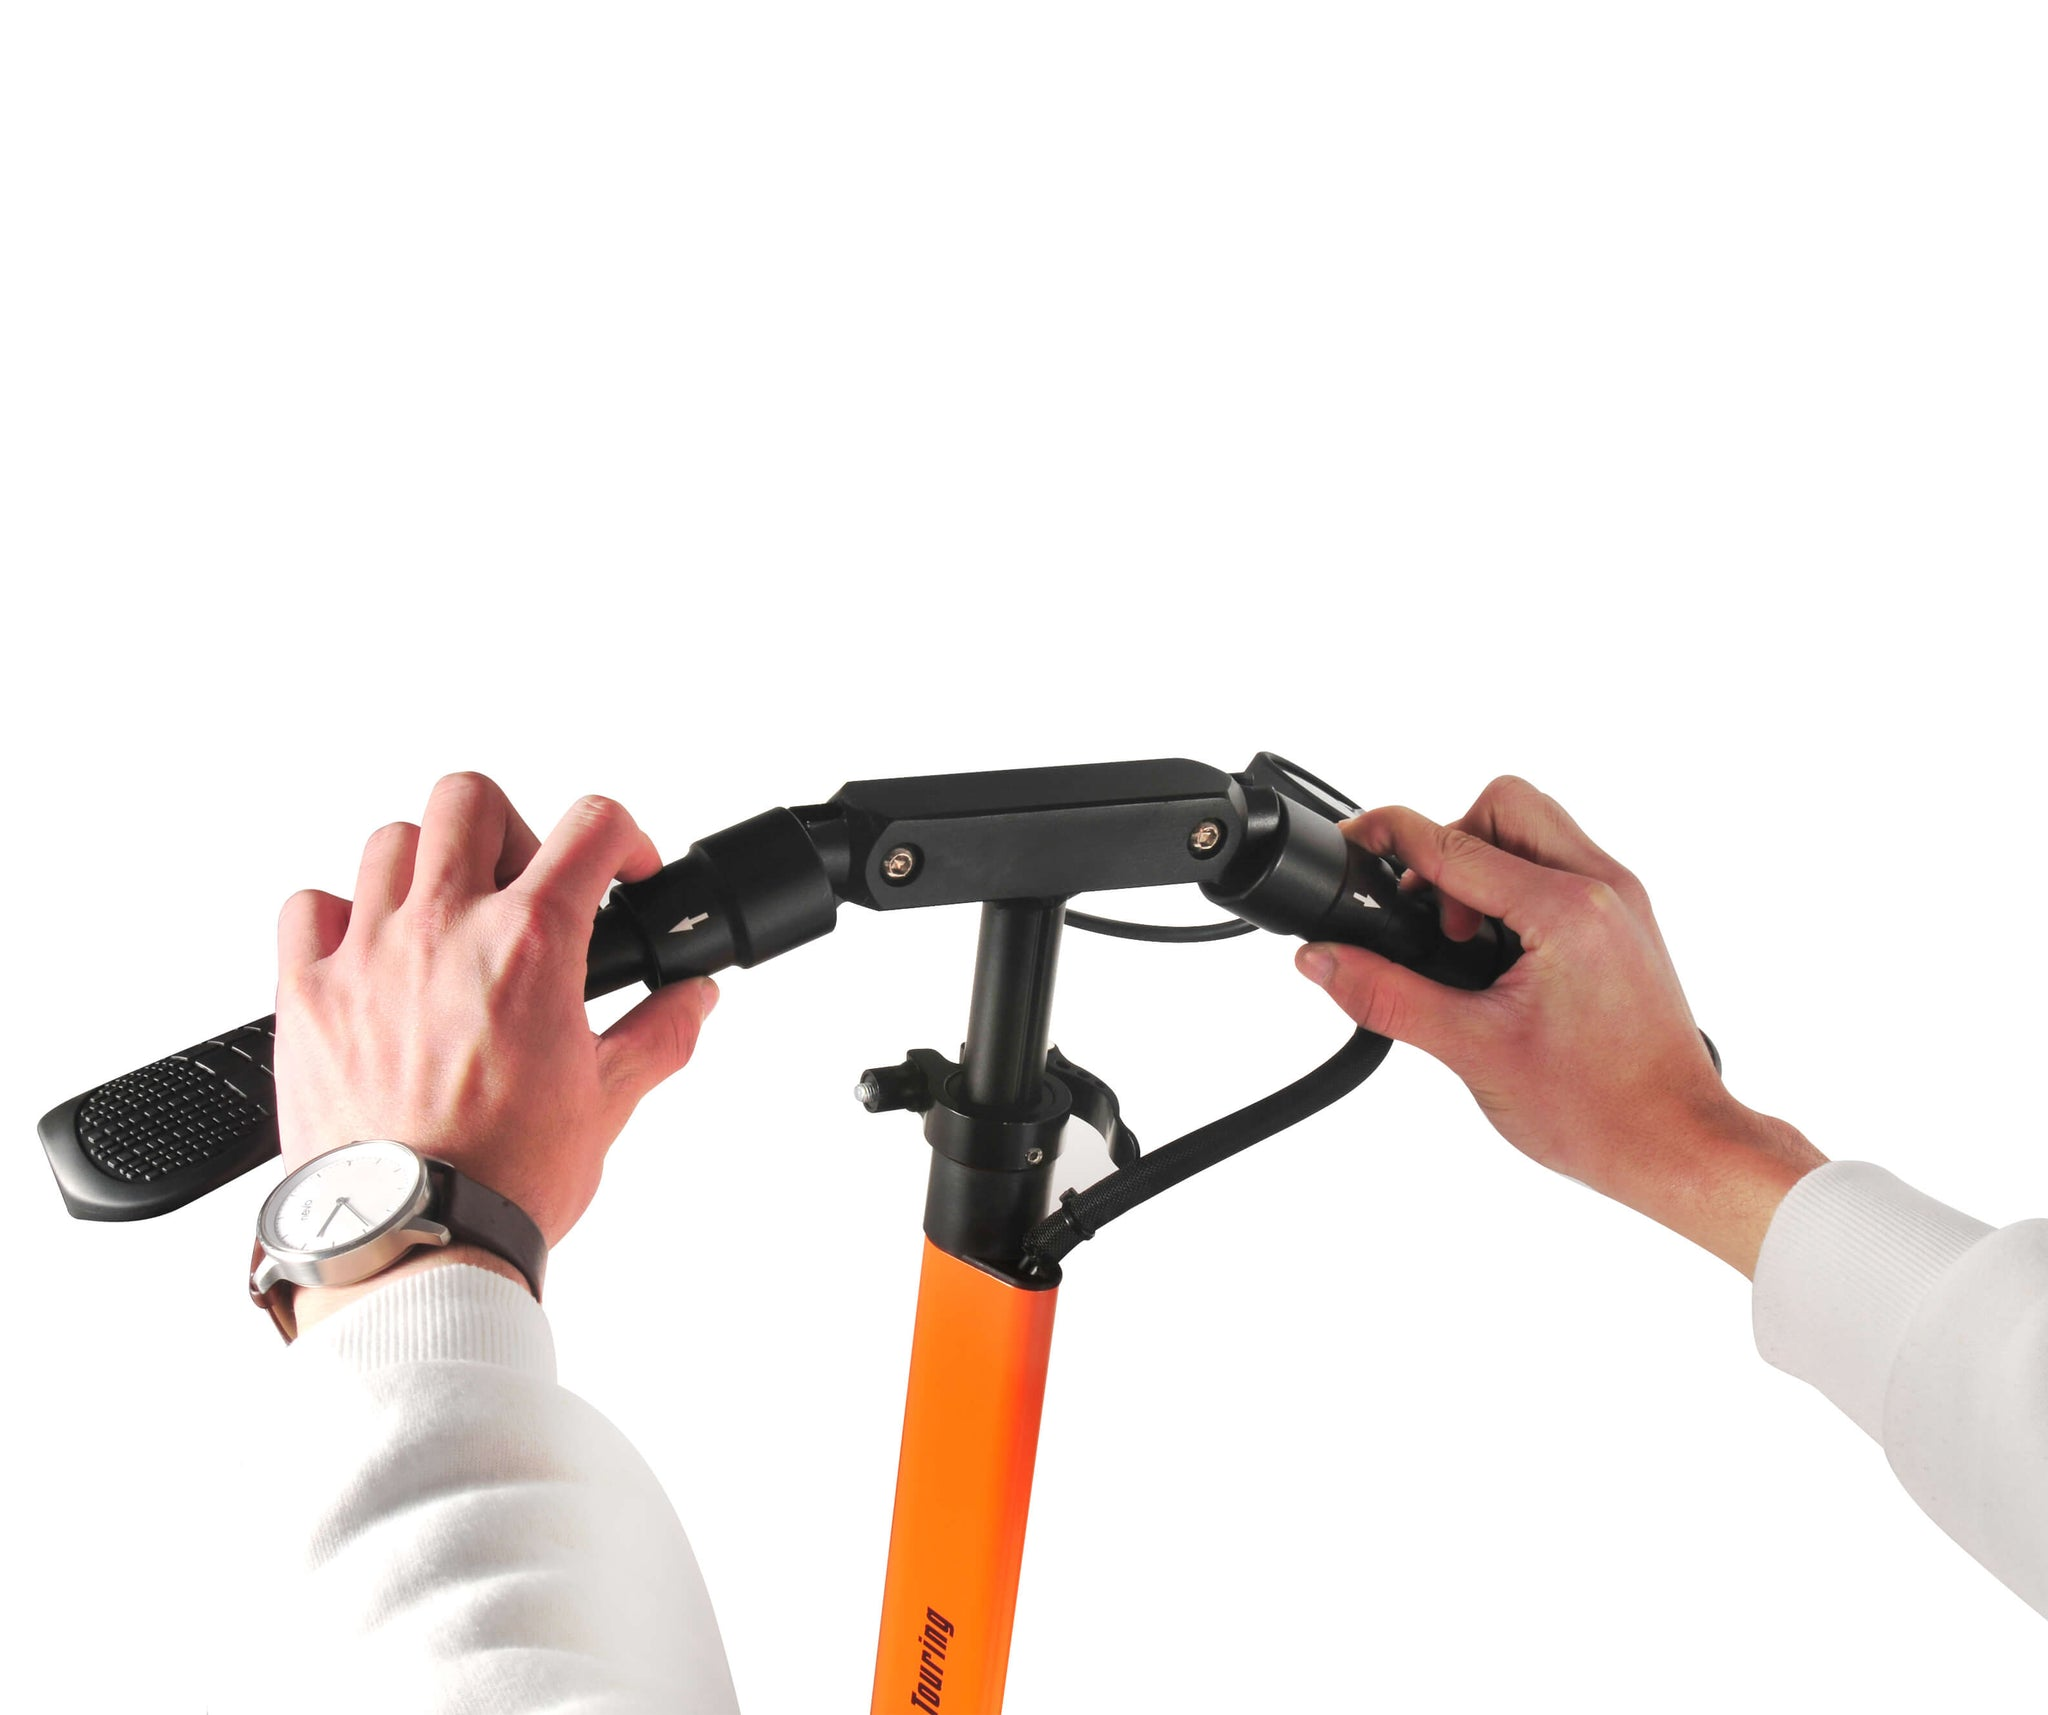 Foldable Handlebar of the EMOVE Touring Electric Scooter